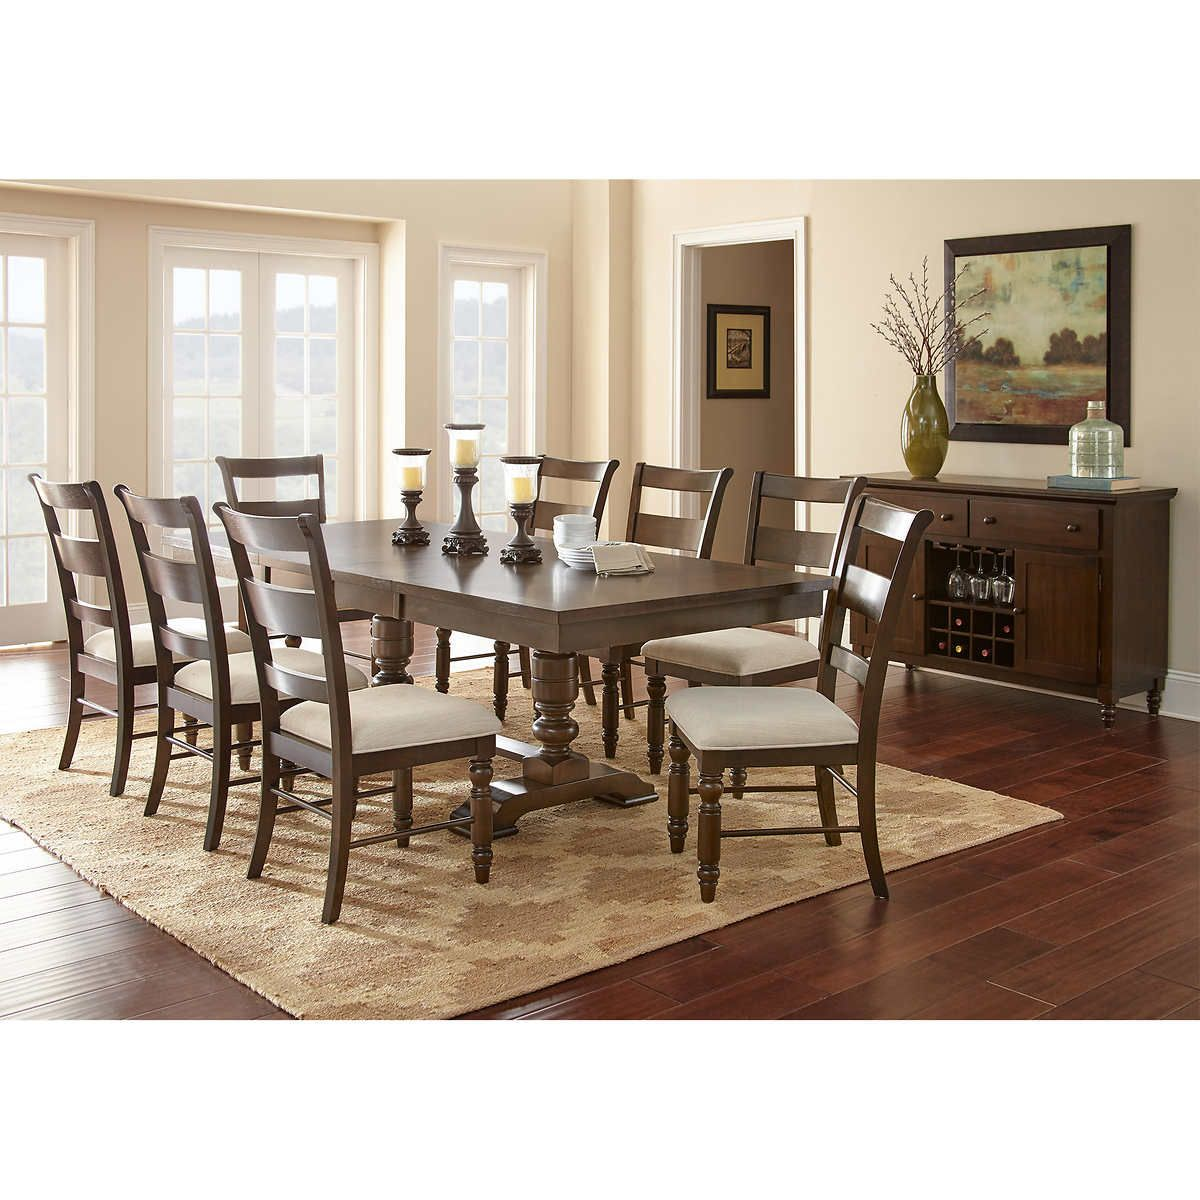 Kaylee 10 Piece Dining Set Dining Room Ambiance Dining Room Rug Dining Table Dimensions